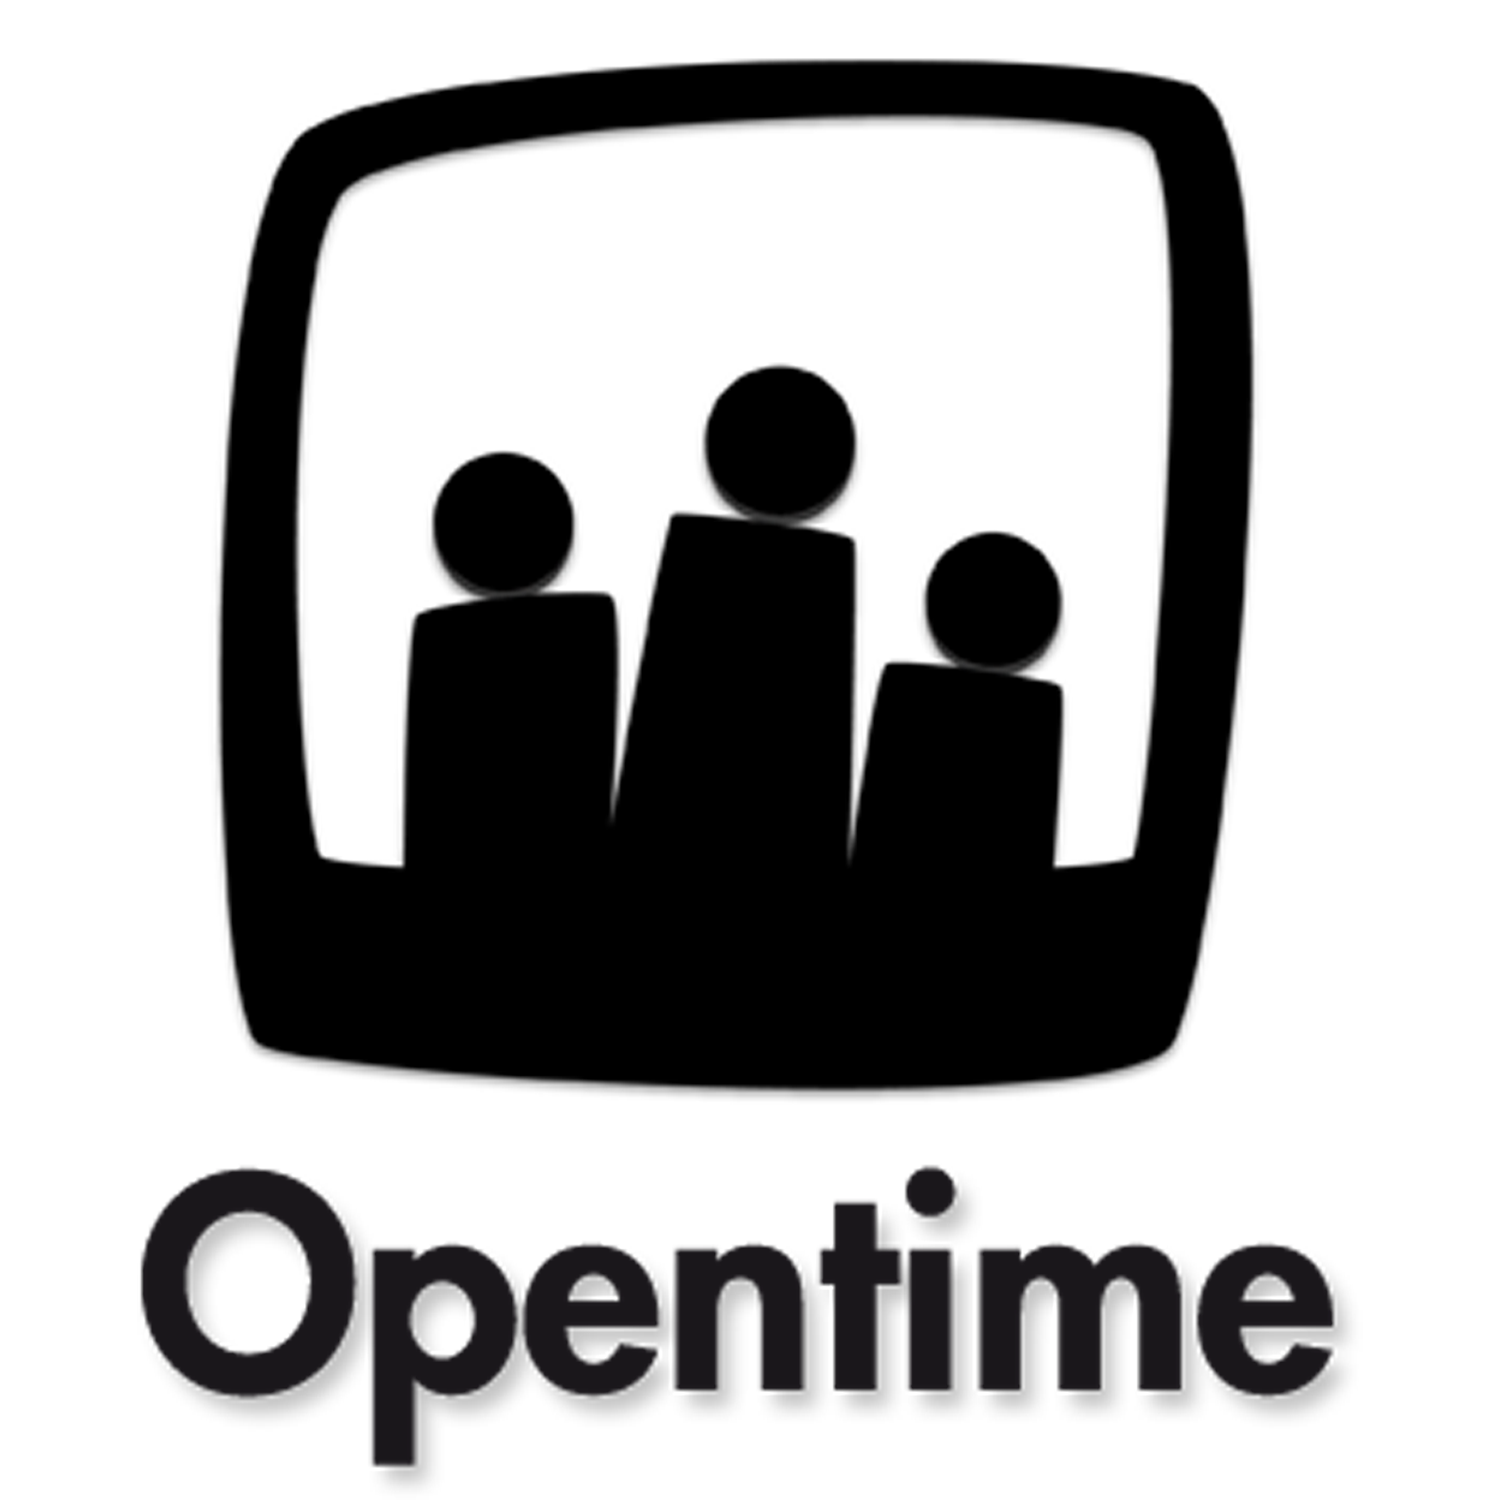 Opentime - Logo